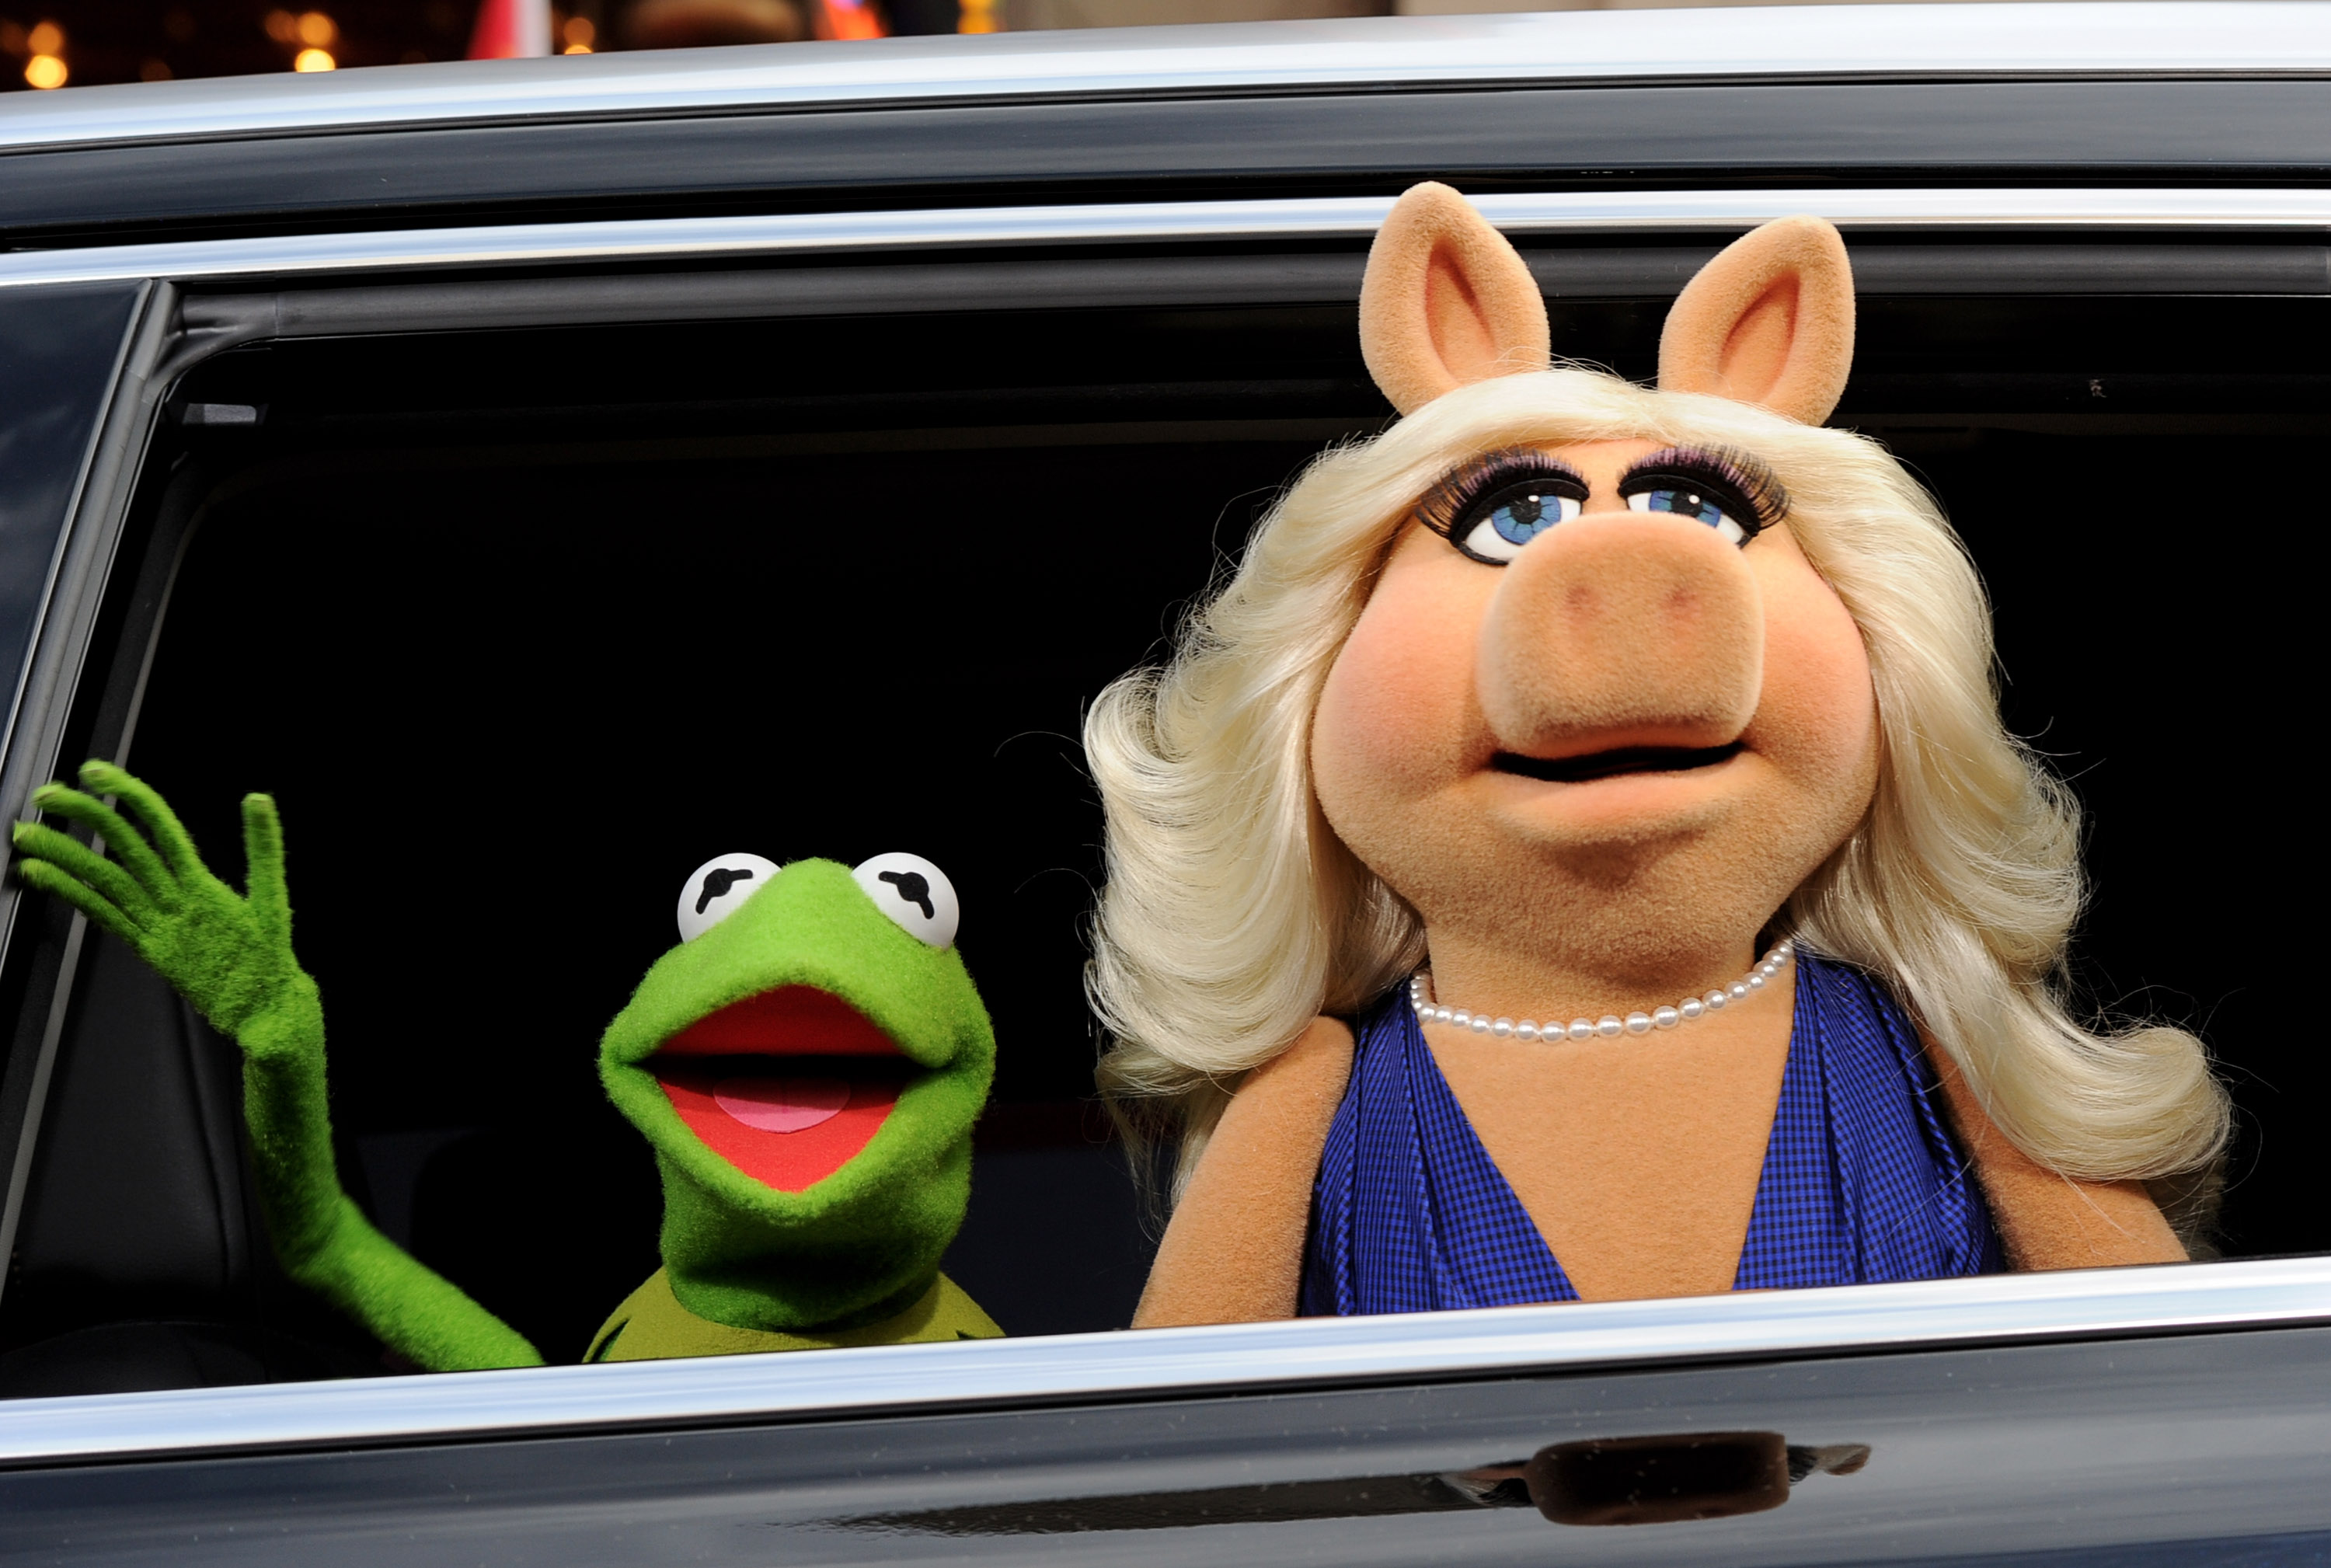 kermit divorced singles personals Dating moi is like flying close to the sun, miss piggy said at the television critics association gathering tuesday it was inevitable that kermit would drop down to the ground while i stayed in the heavens.